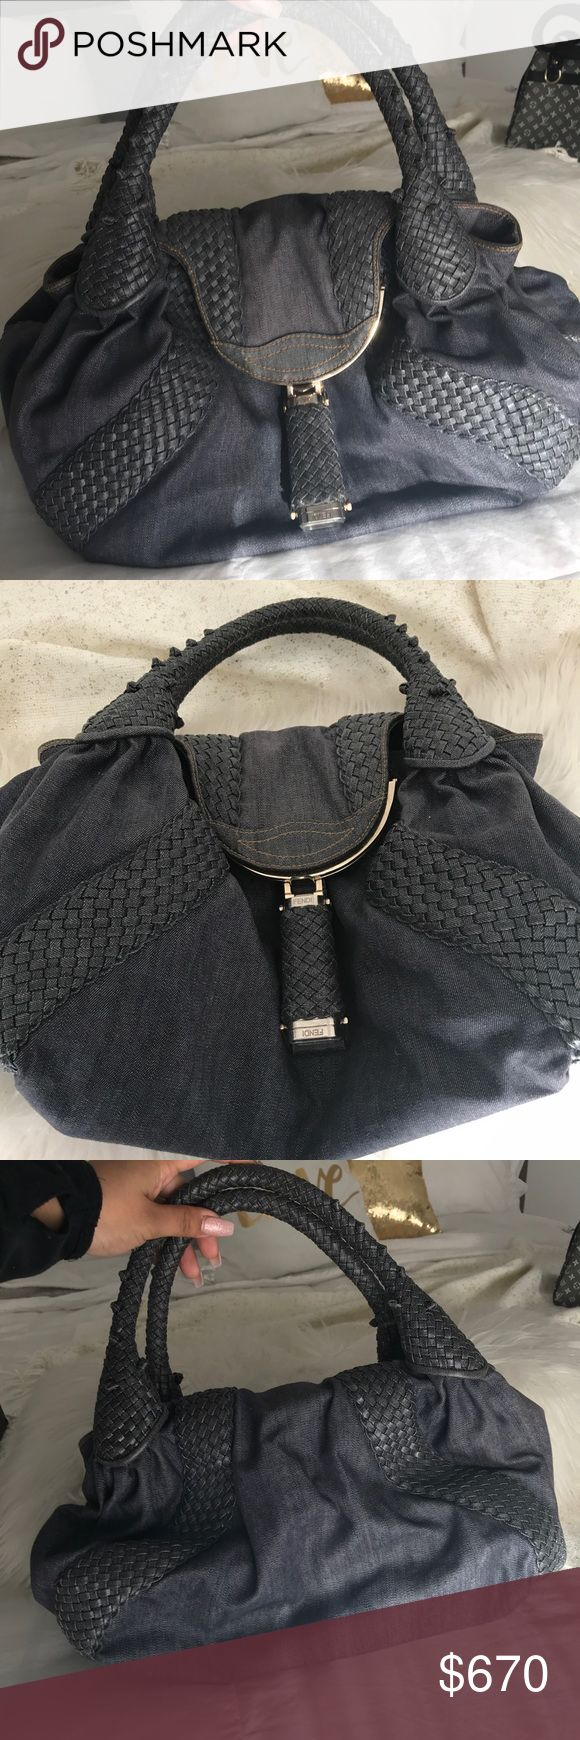 ✨Fendi Spy Bag✨ Lightly used (good condition) AUTHENTIC Fendi Bags Shoulder Bags